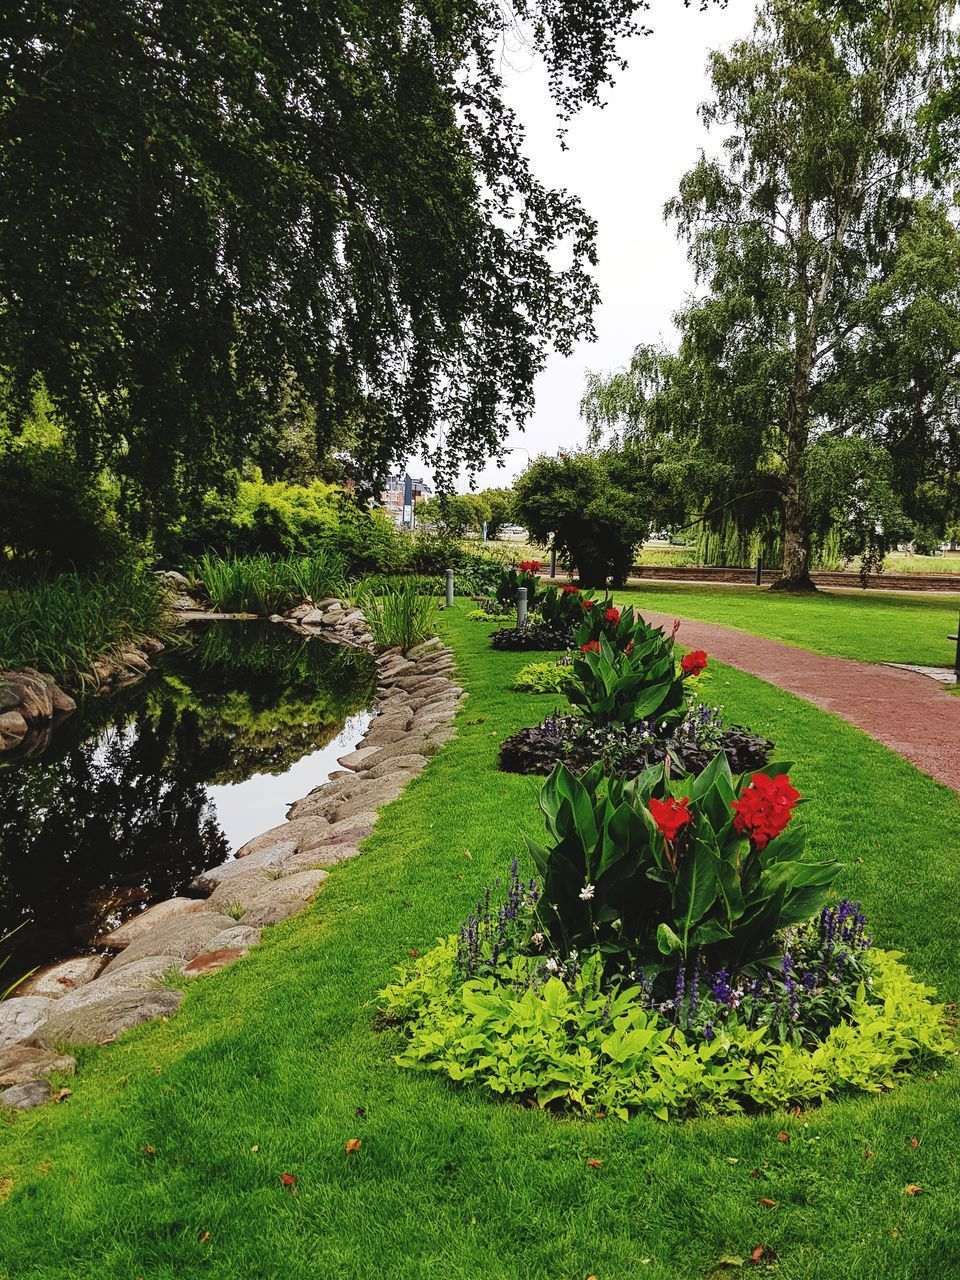 SCENIC VIEW OF FLOWERING PLANTS BY PARK IN GARDEN